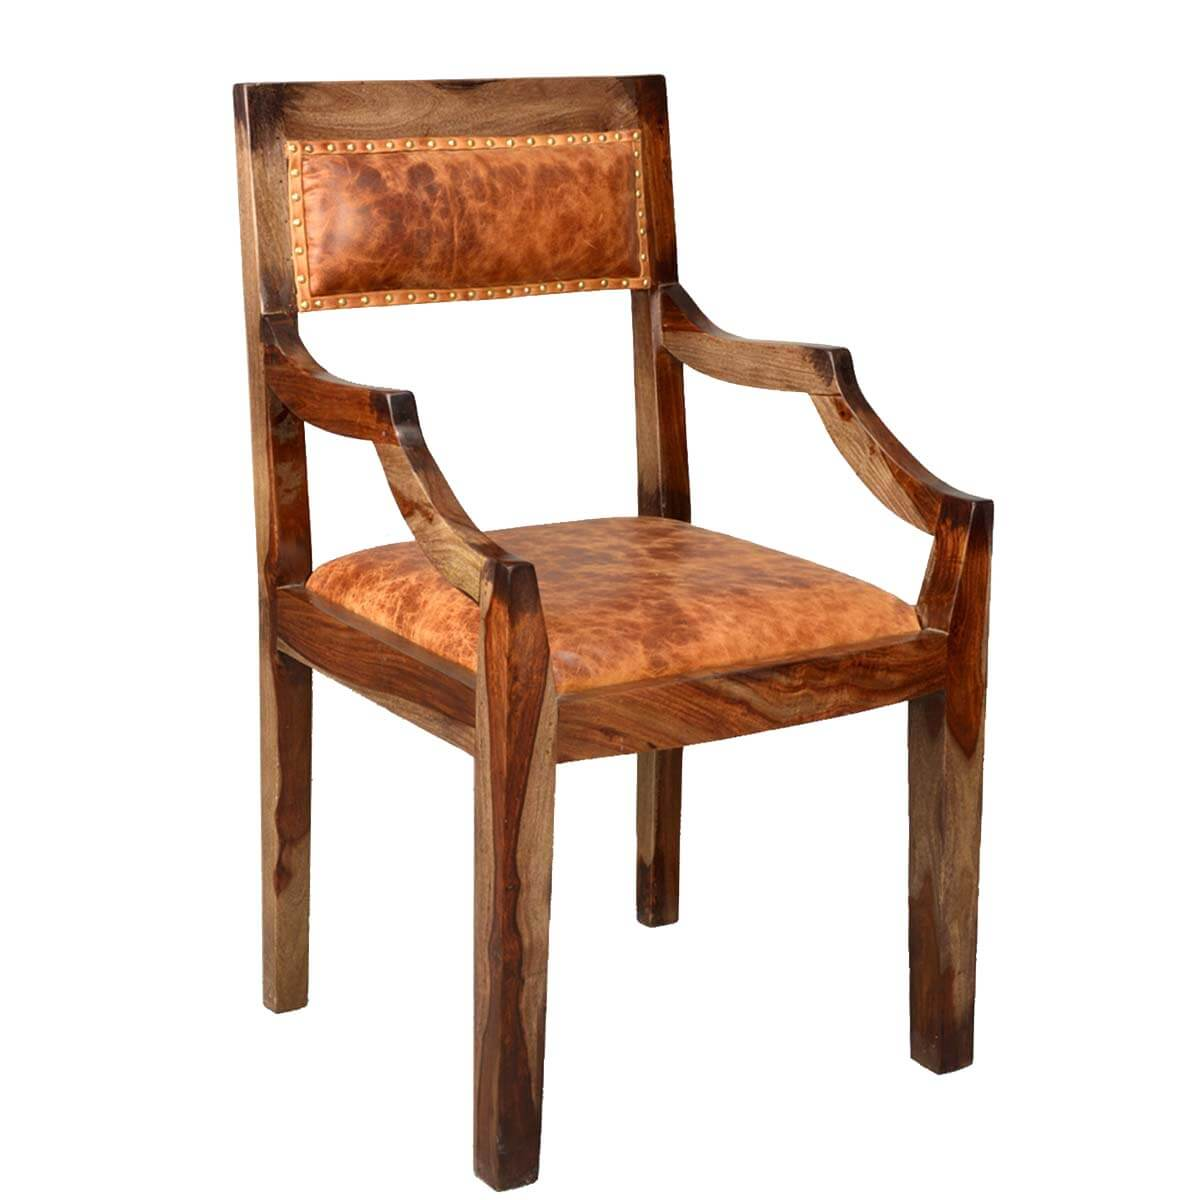 Imperial Solid Wood & Leather Upholstered Dining Chair